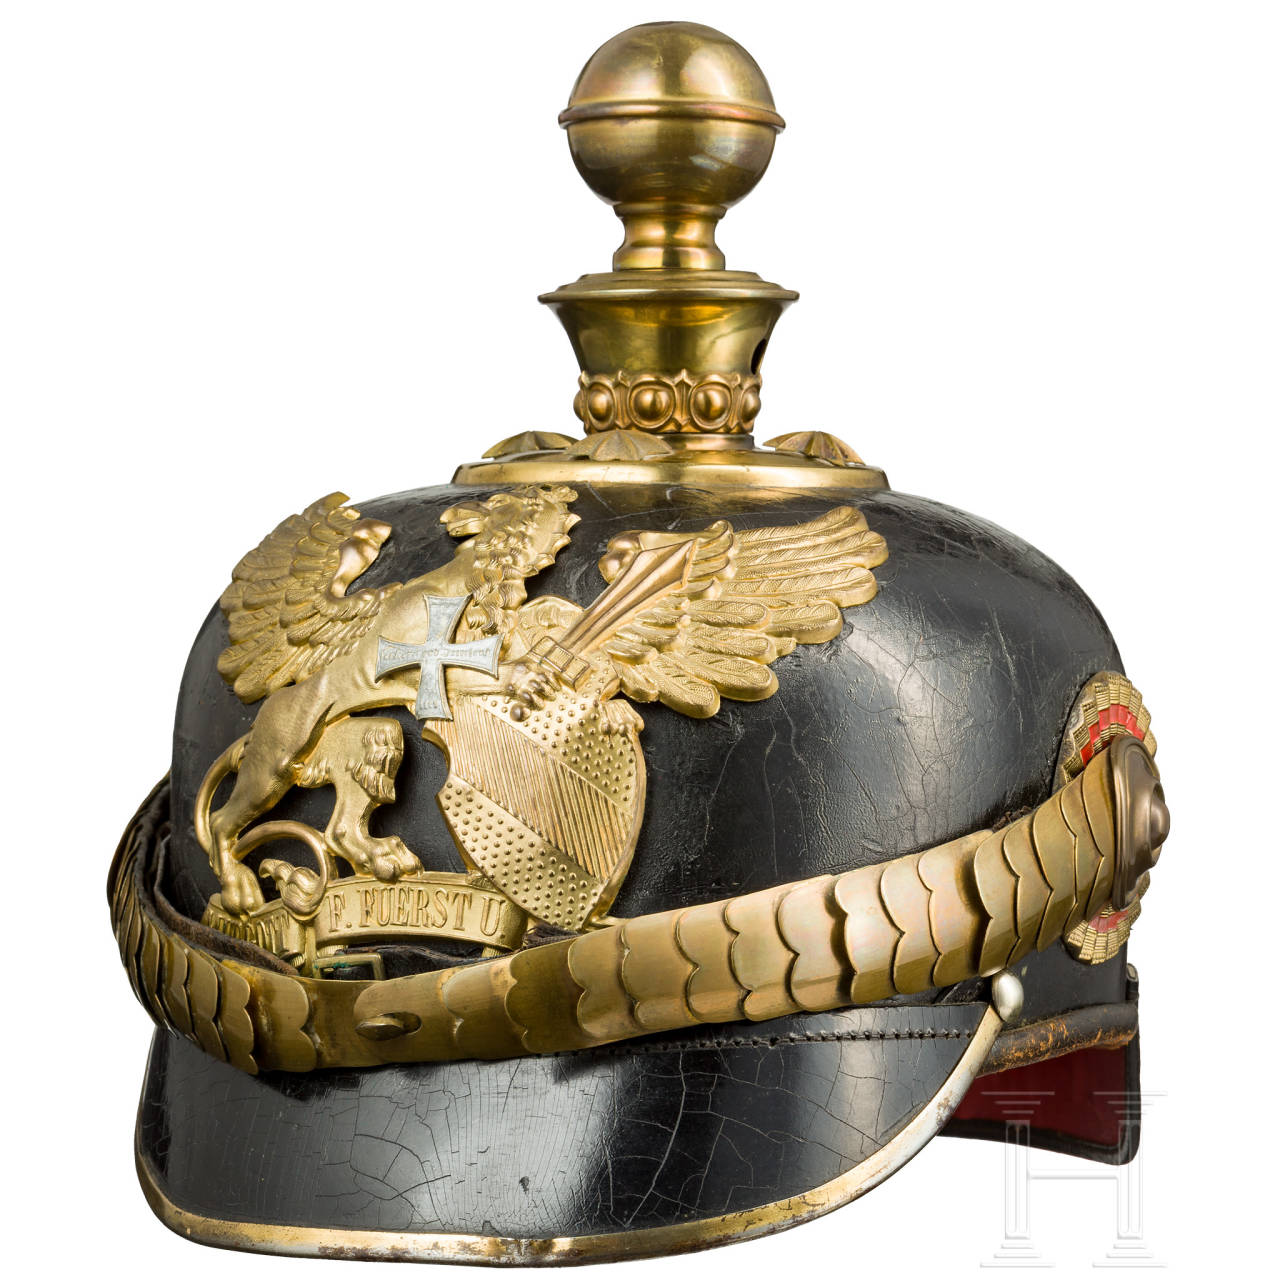 Helmet of a reserve officer of the field artillery, c. 1900